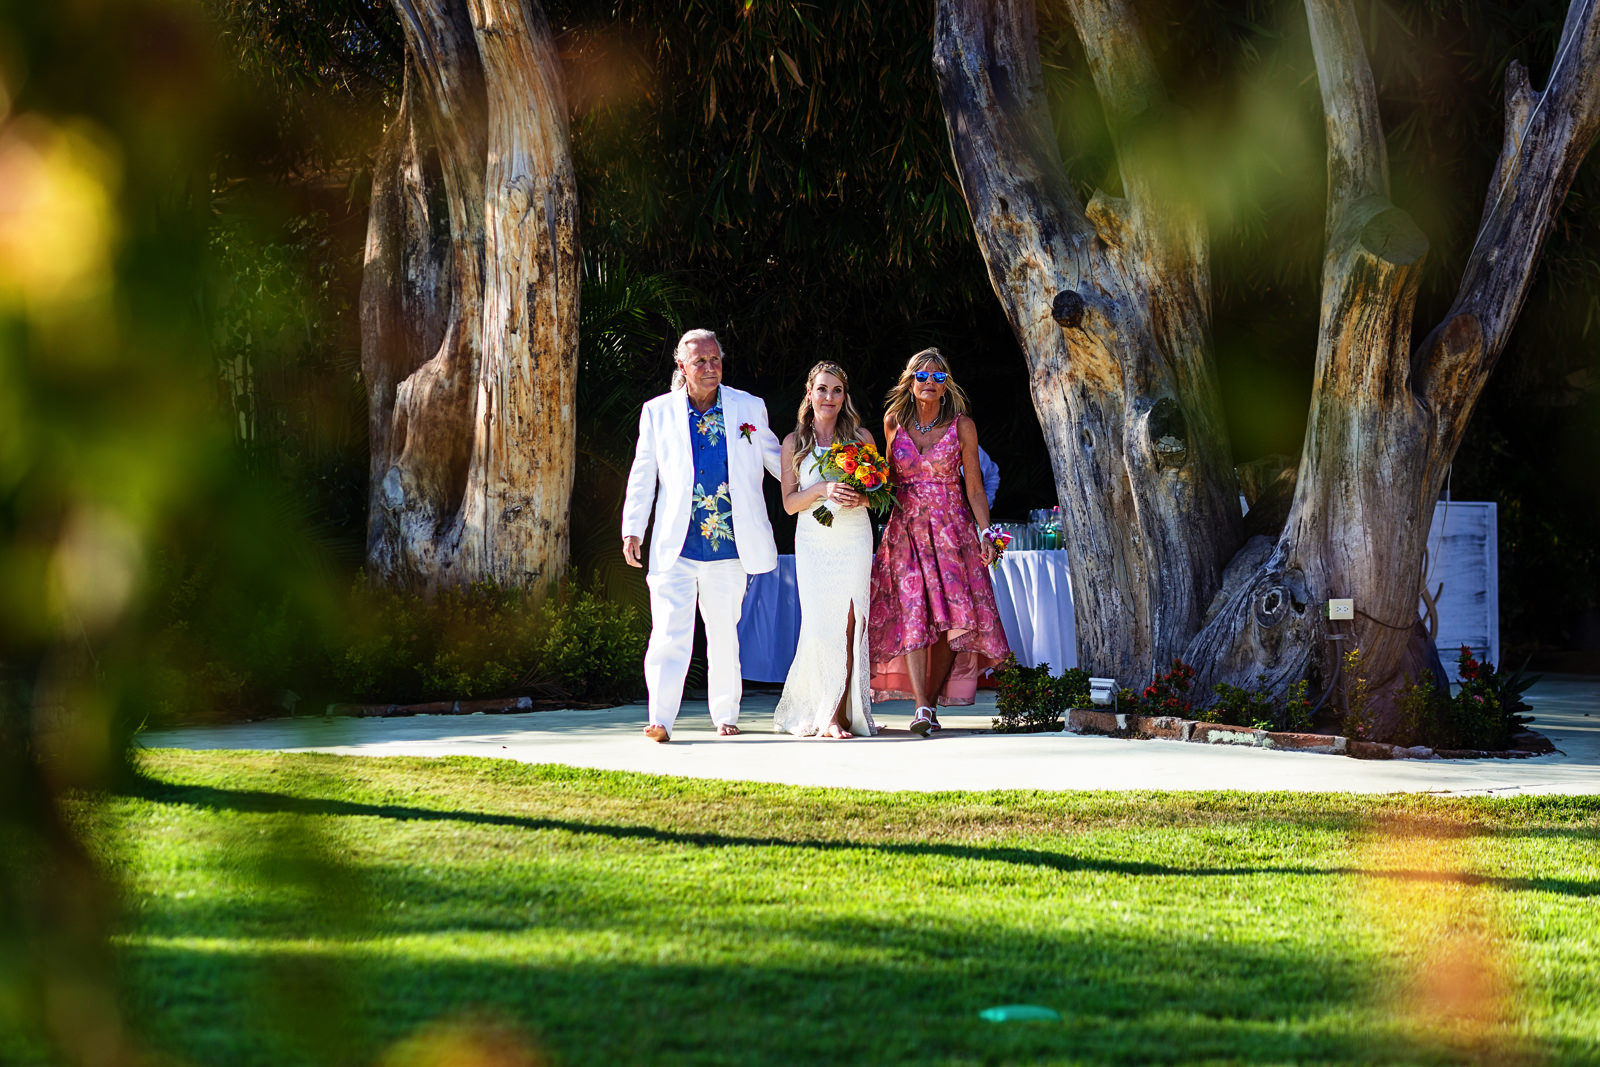 Bride walking to the aisle of the wedding ceremony with her mother and father